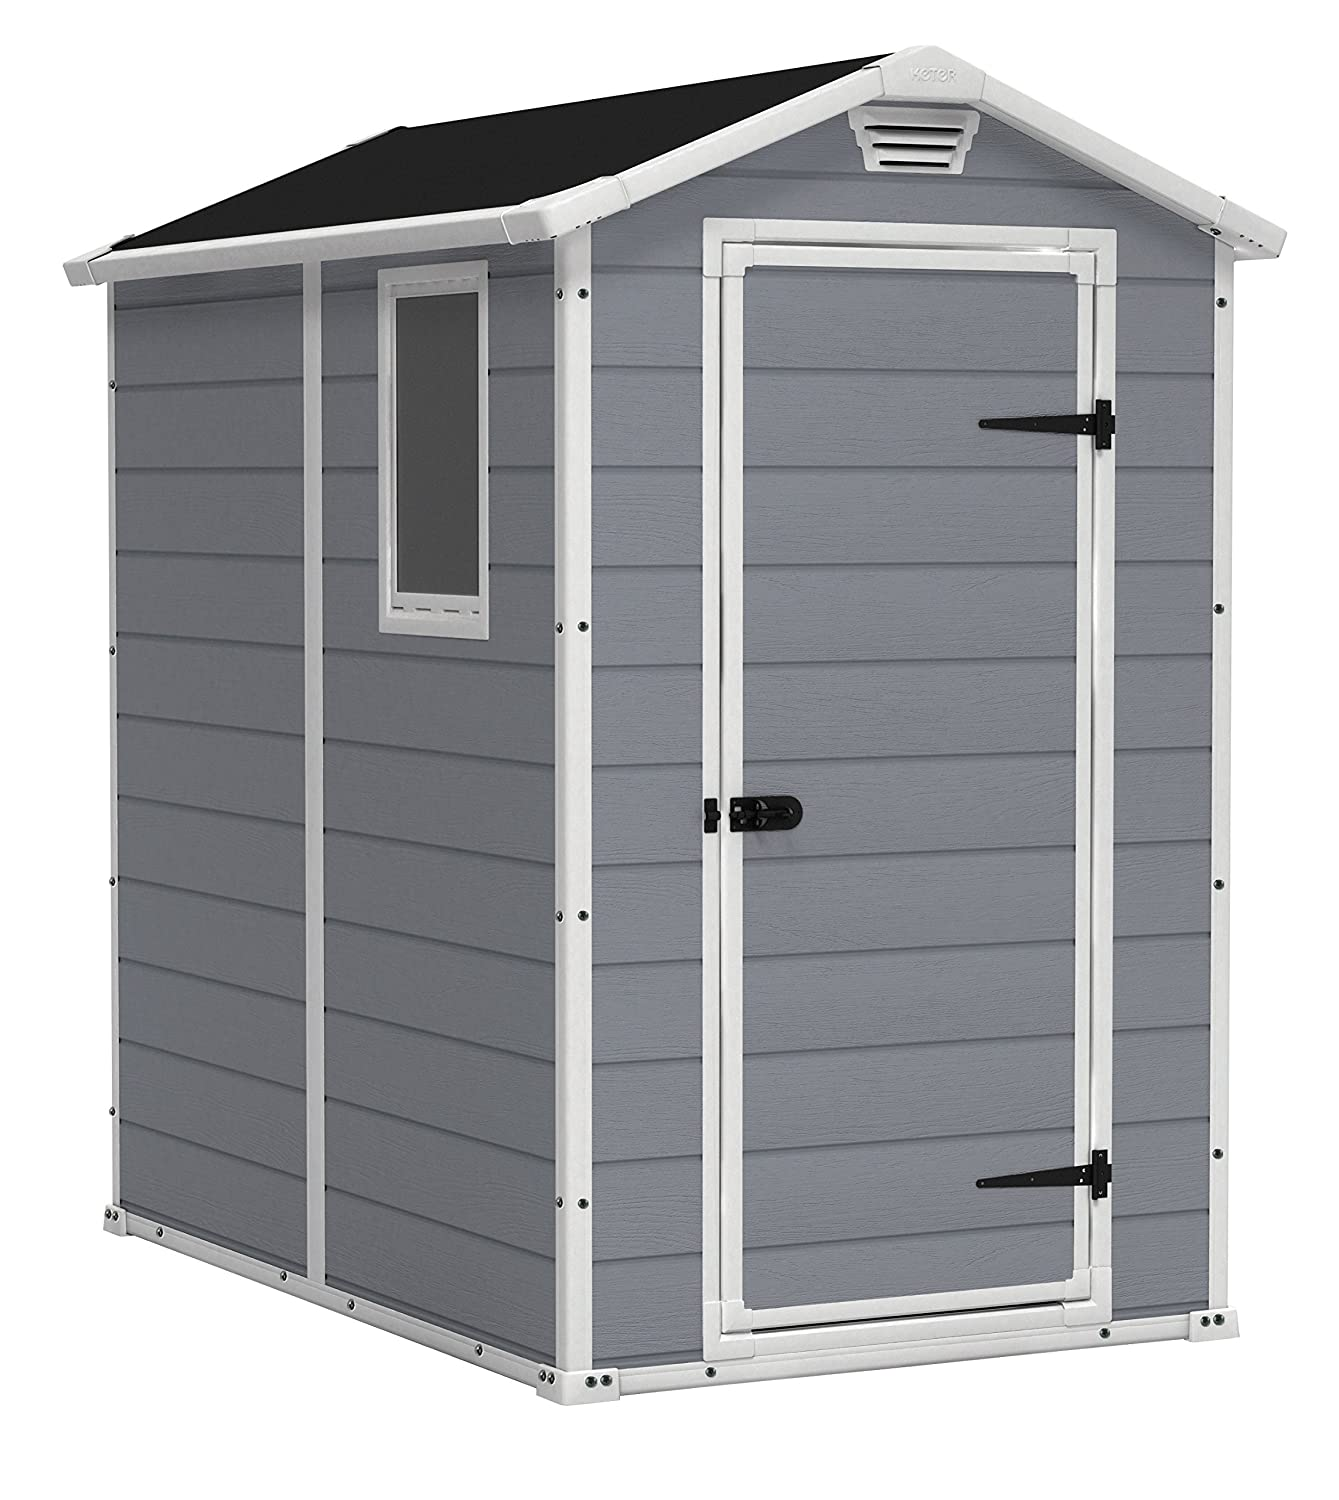 Keter Manor Large 4 x 6 ft. Resin Outdoor Backyard Garden Storage Shed  sc 1 st  Amazon.com & Sheds : Storage Sheds : Garden Store : Amazon.com